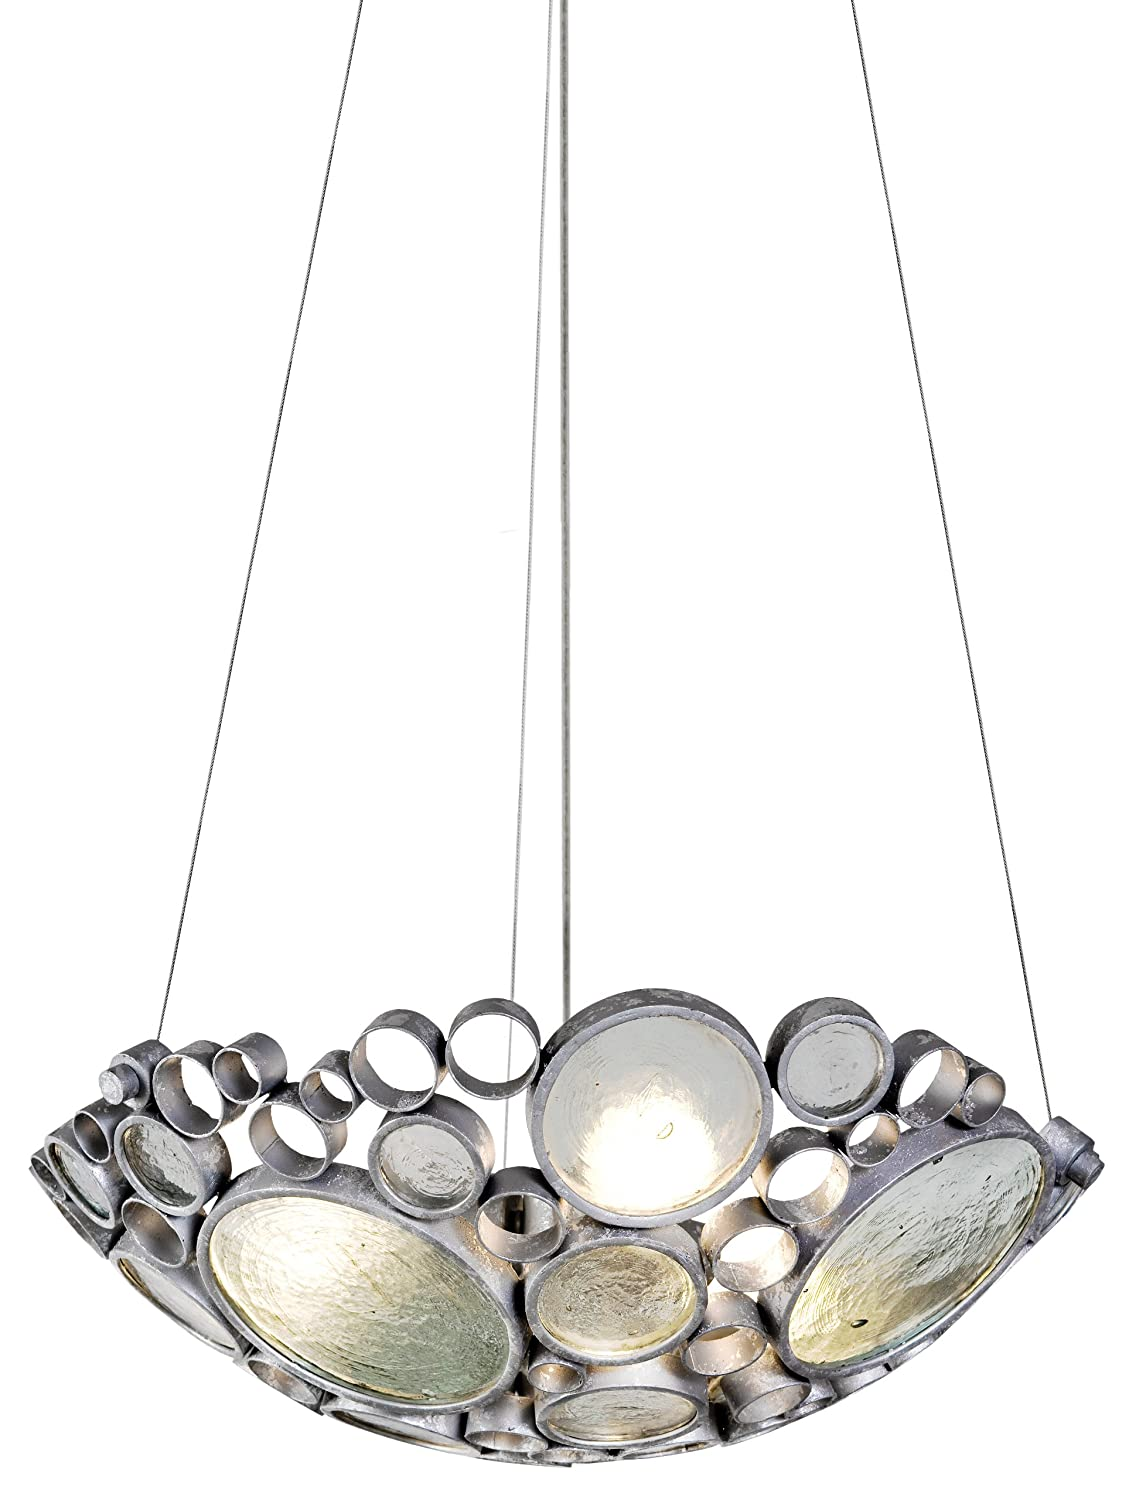 varaluz pnv fascination collection light pendant nevada  - varaluz pnv fascination collection light pendant nevada finish withrecycled green bottle glass inch by inch  ceiling pendant fixtures